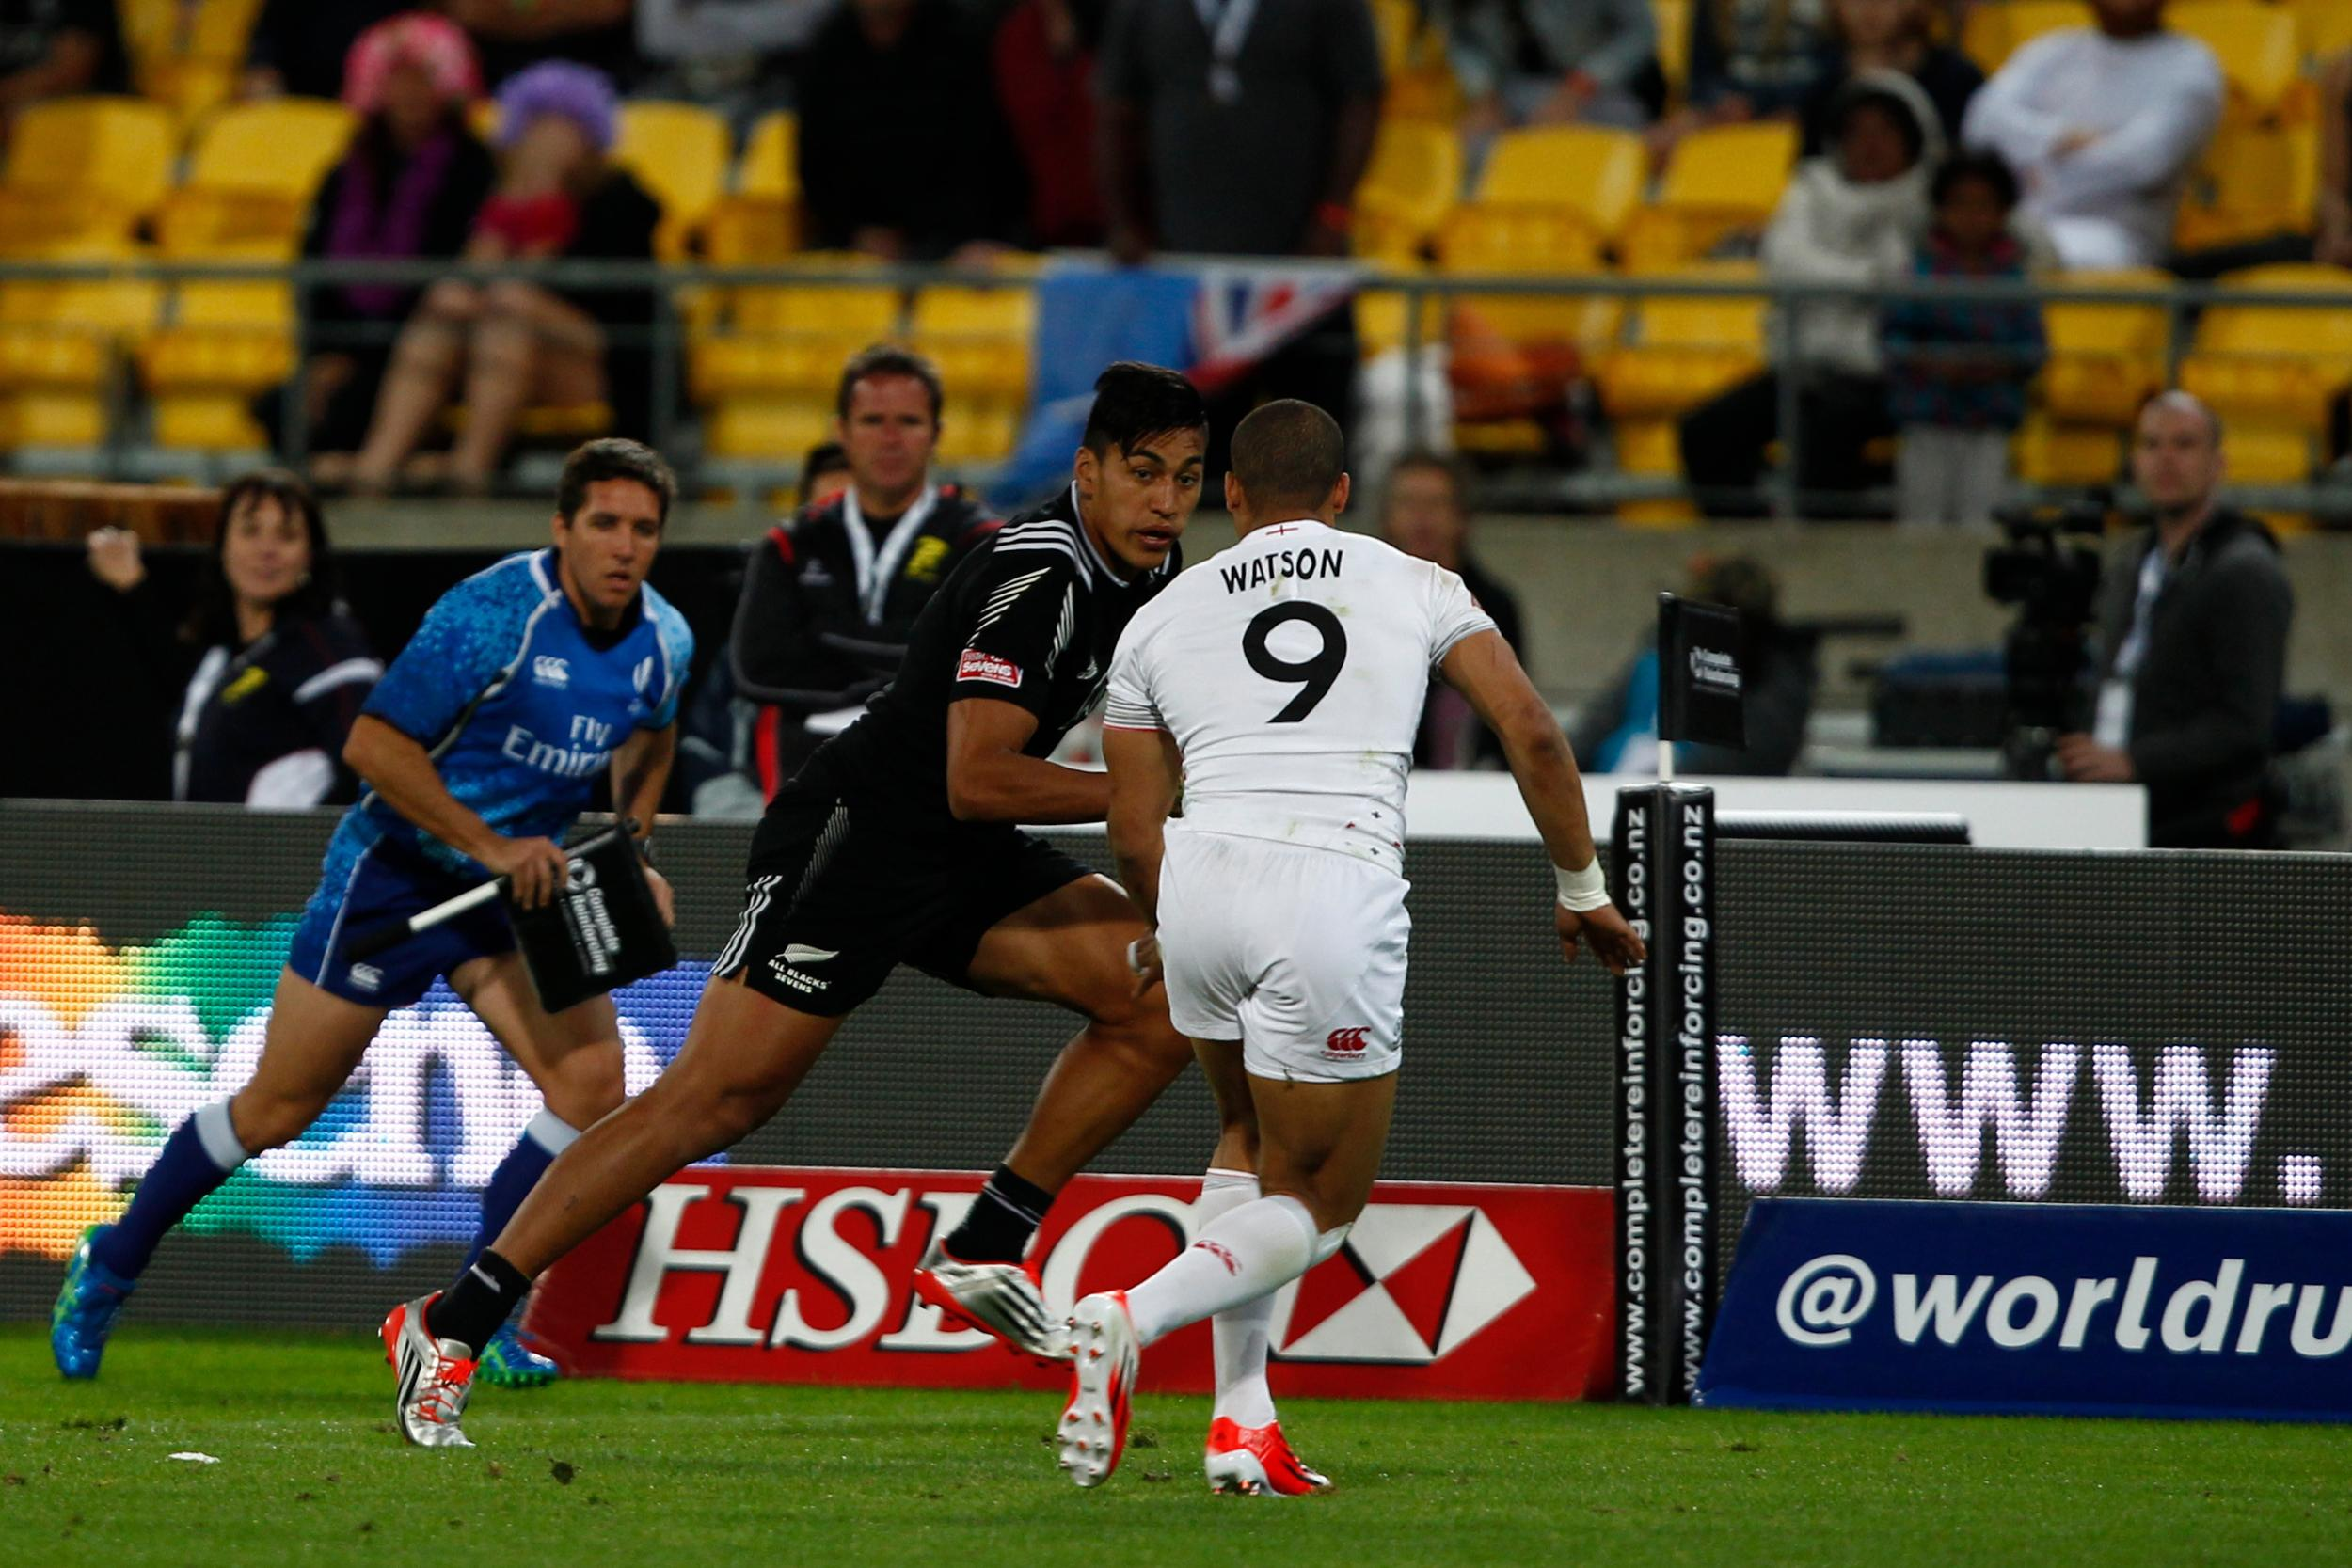 Rieko Ioane scored two tries in the win over England ©World Rugby/Martin Seras Lima